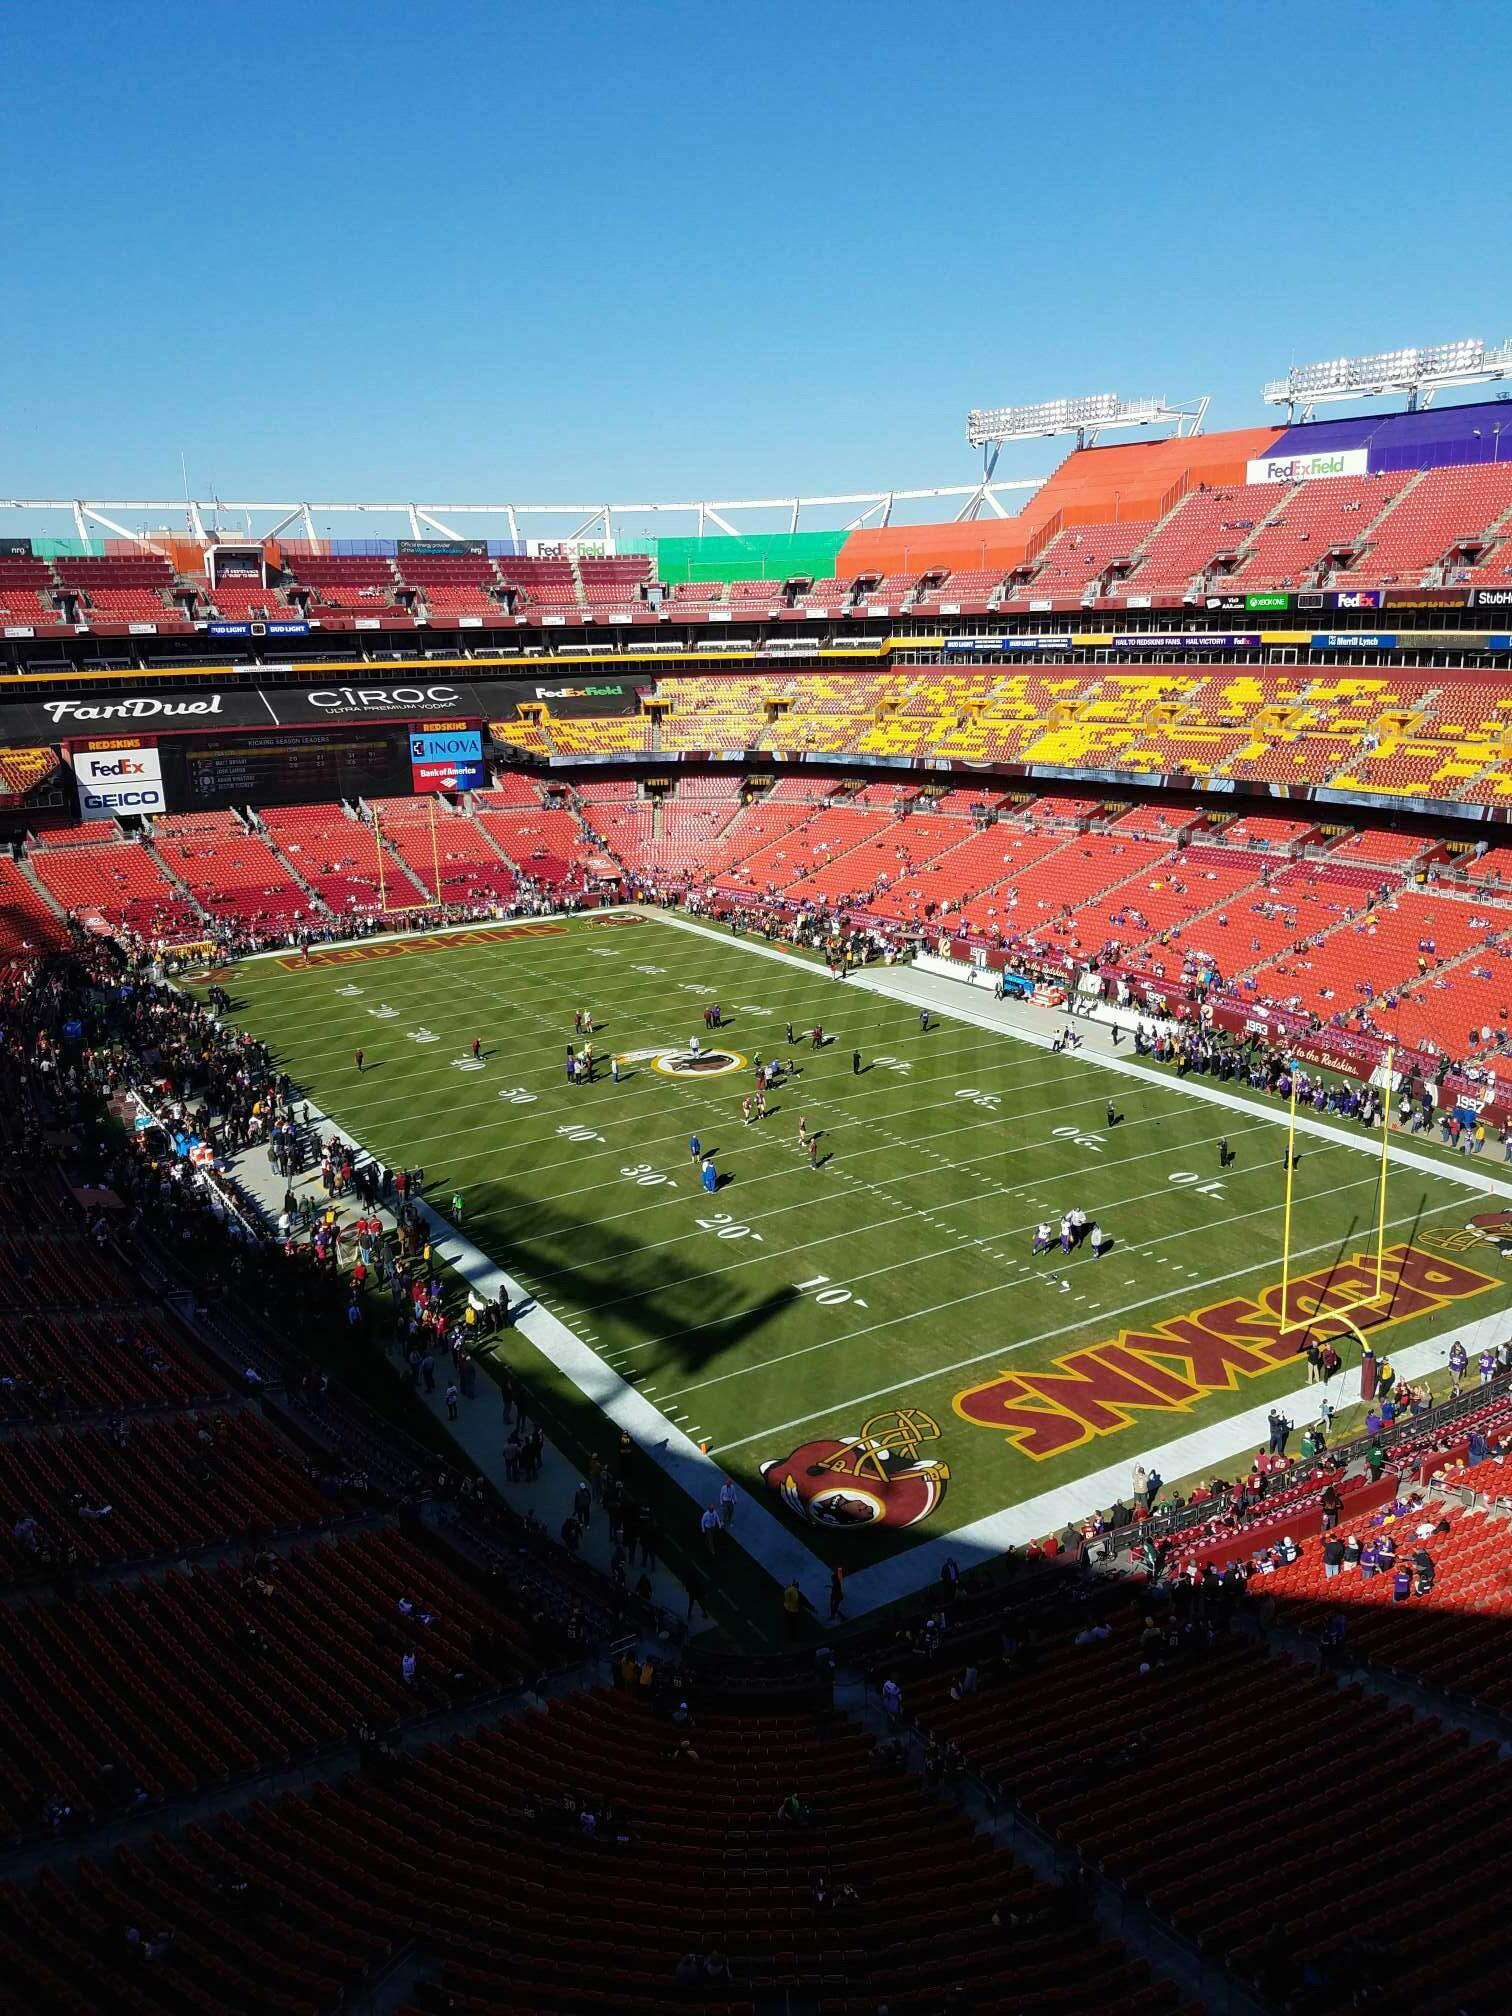 FedEx Field Section 446 Row 1 Seat 1